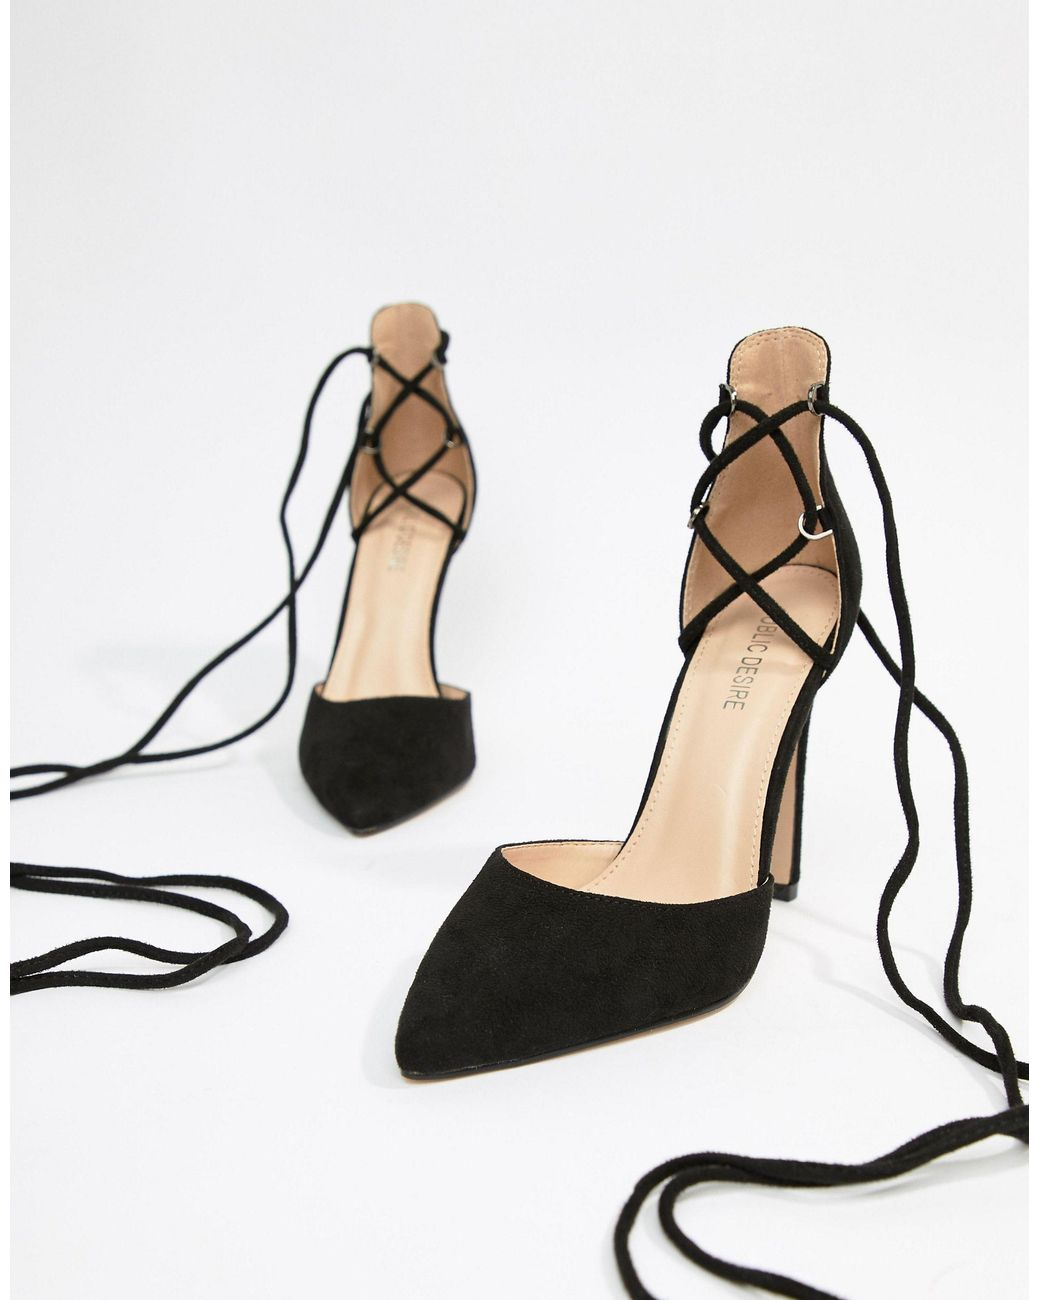 Classy Black Tie Up Heeled Shoes - Lyst